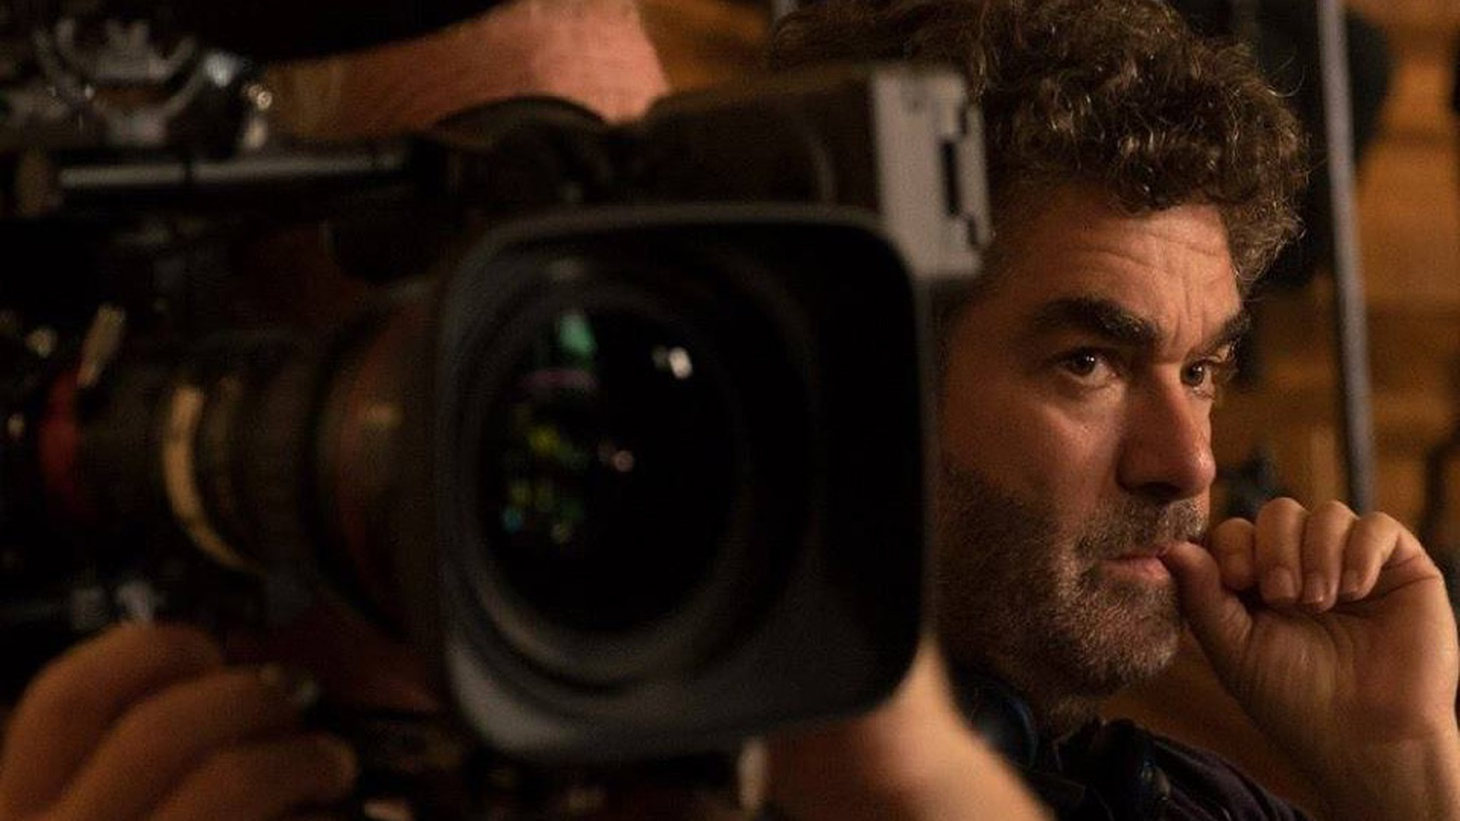 Director Joe Berlinger visits The Treatment to talk Armenian genocide via unbiased cinema verité in Intent to Destroy.